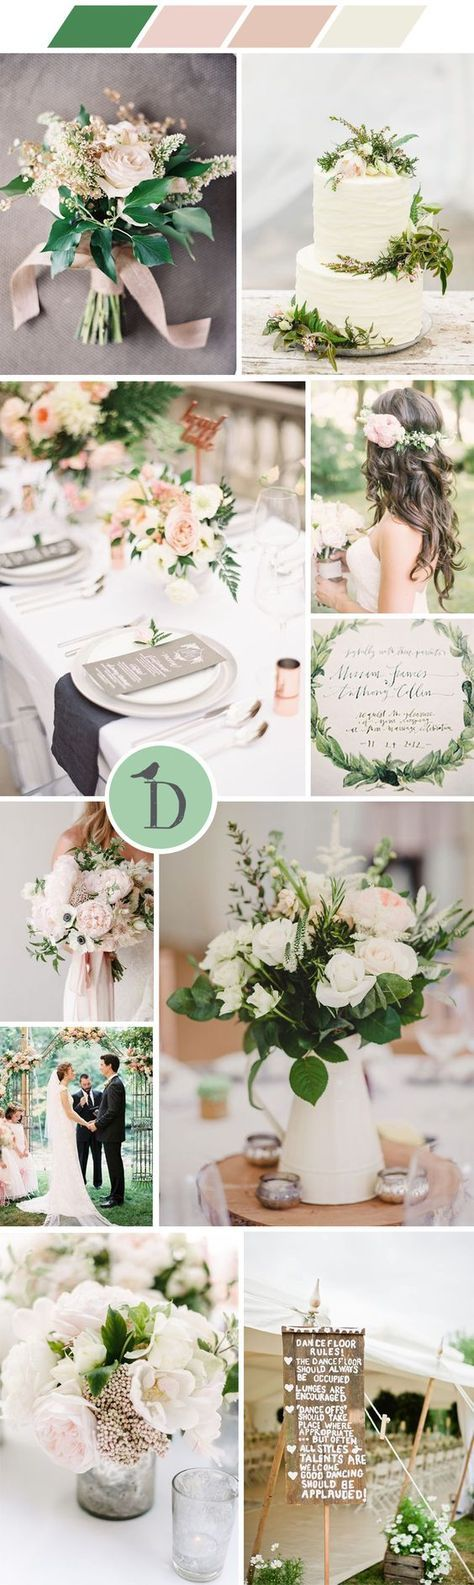 A blush, white, and green wedding color scheme is feminine, romantic, and chic. We love the soft colors and the simplicity of this scheme. Bringing in lots of greenery to your wedding decor is not just on trend, it's stylish, affordable and allows pastel colors to really sing